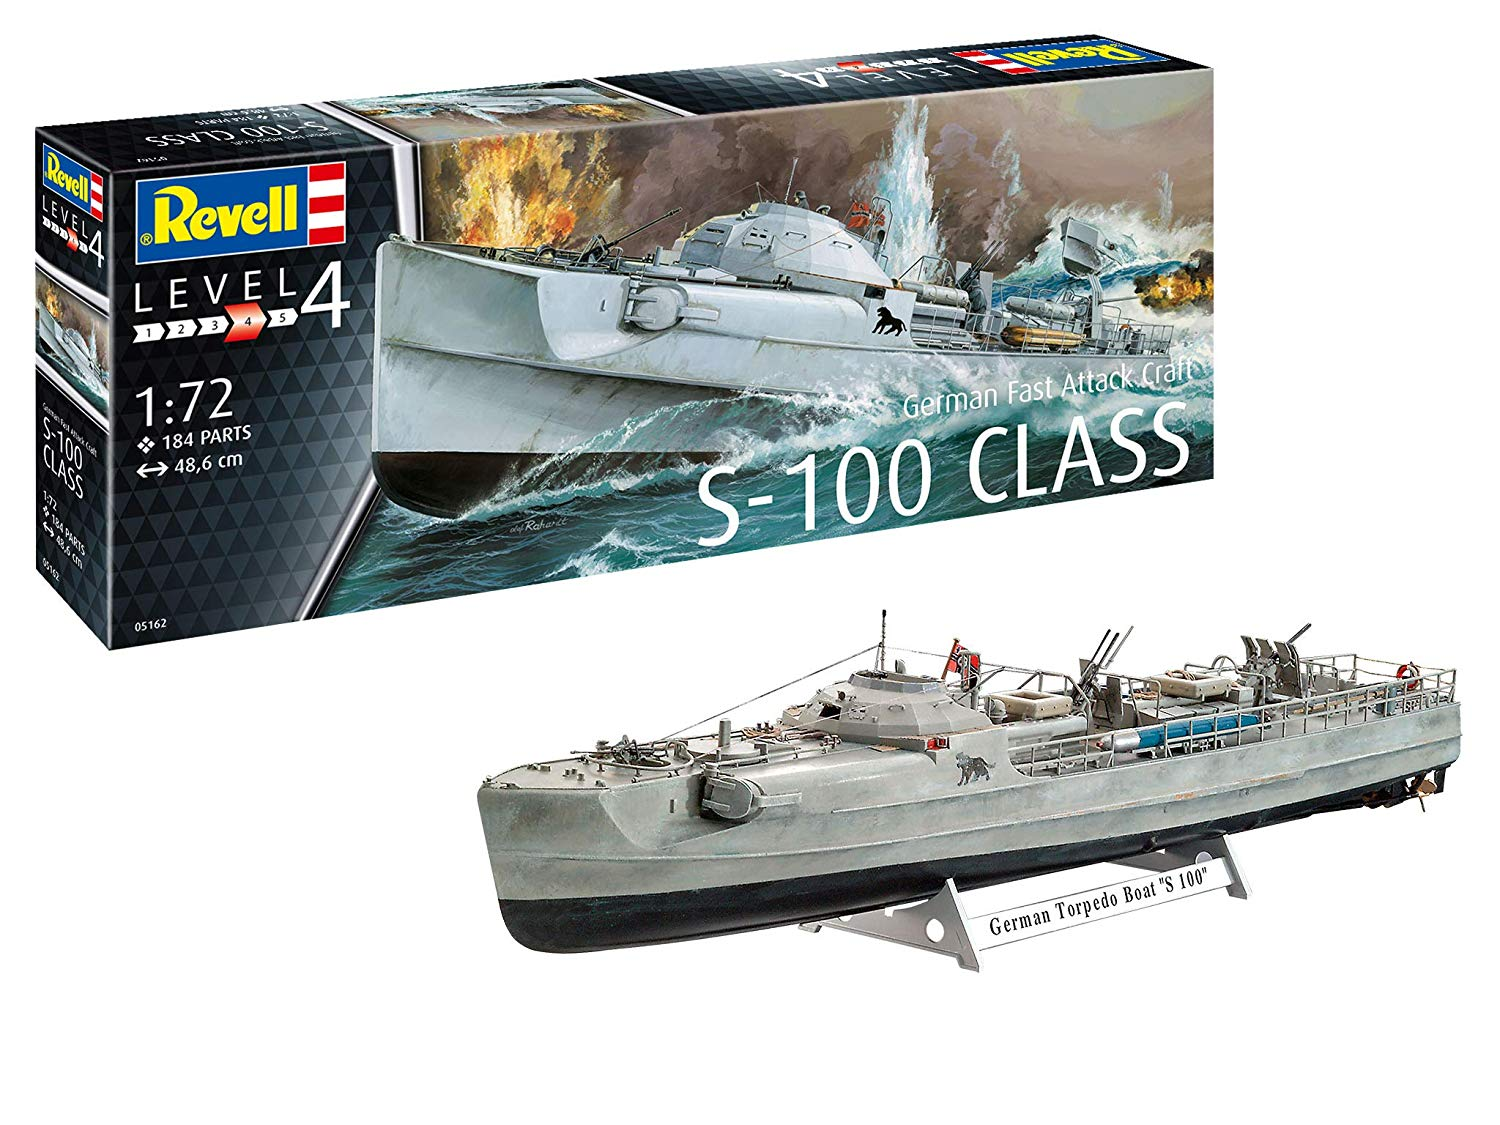 Revell GmbH Revell 05162 5162 1:72 German Fast Attack Craft S-100 Plastic Model Kit Multicolour, 1/72